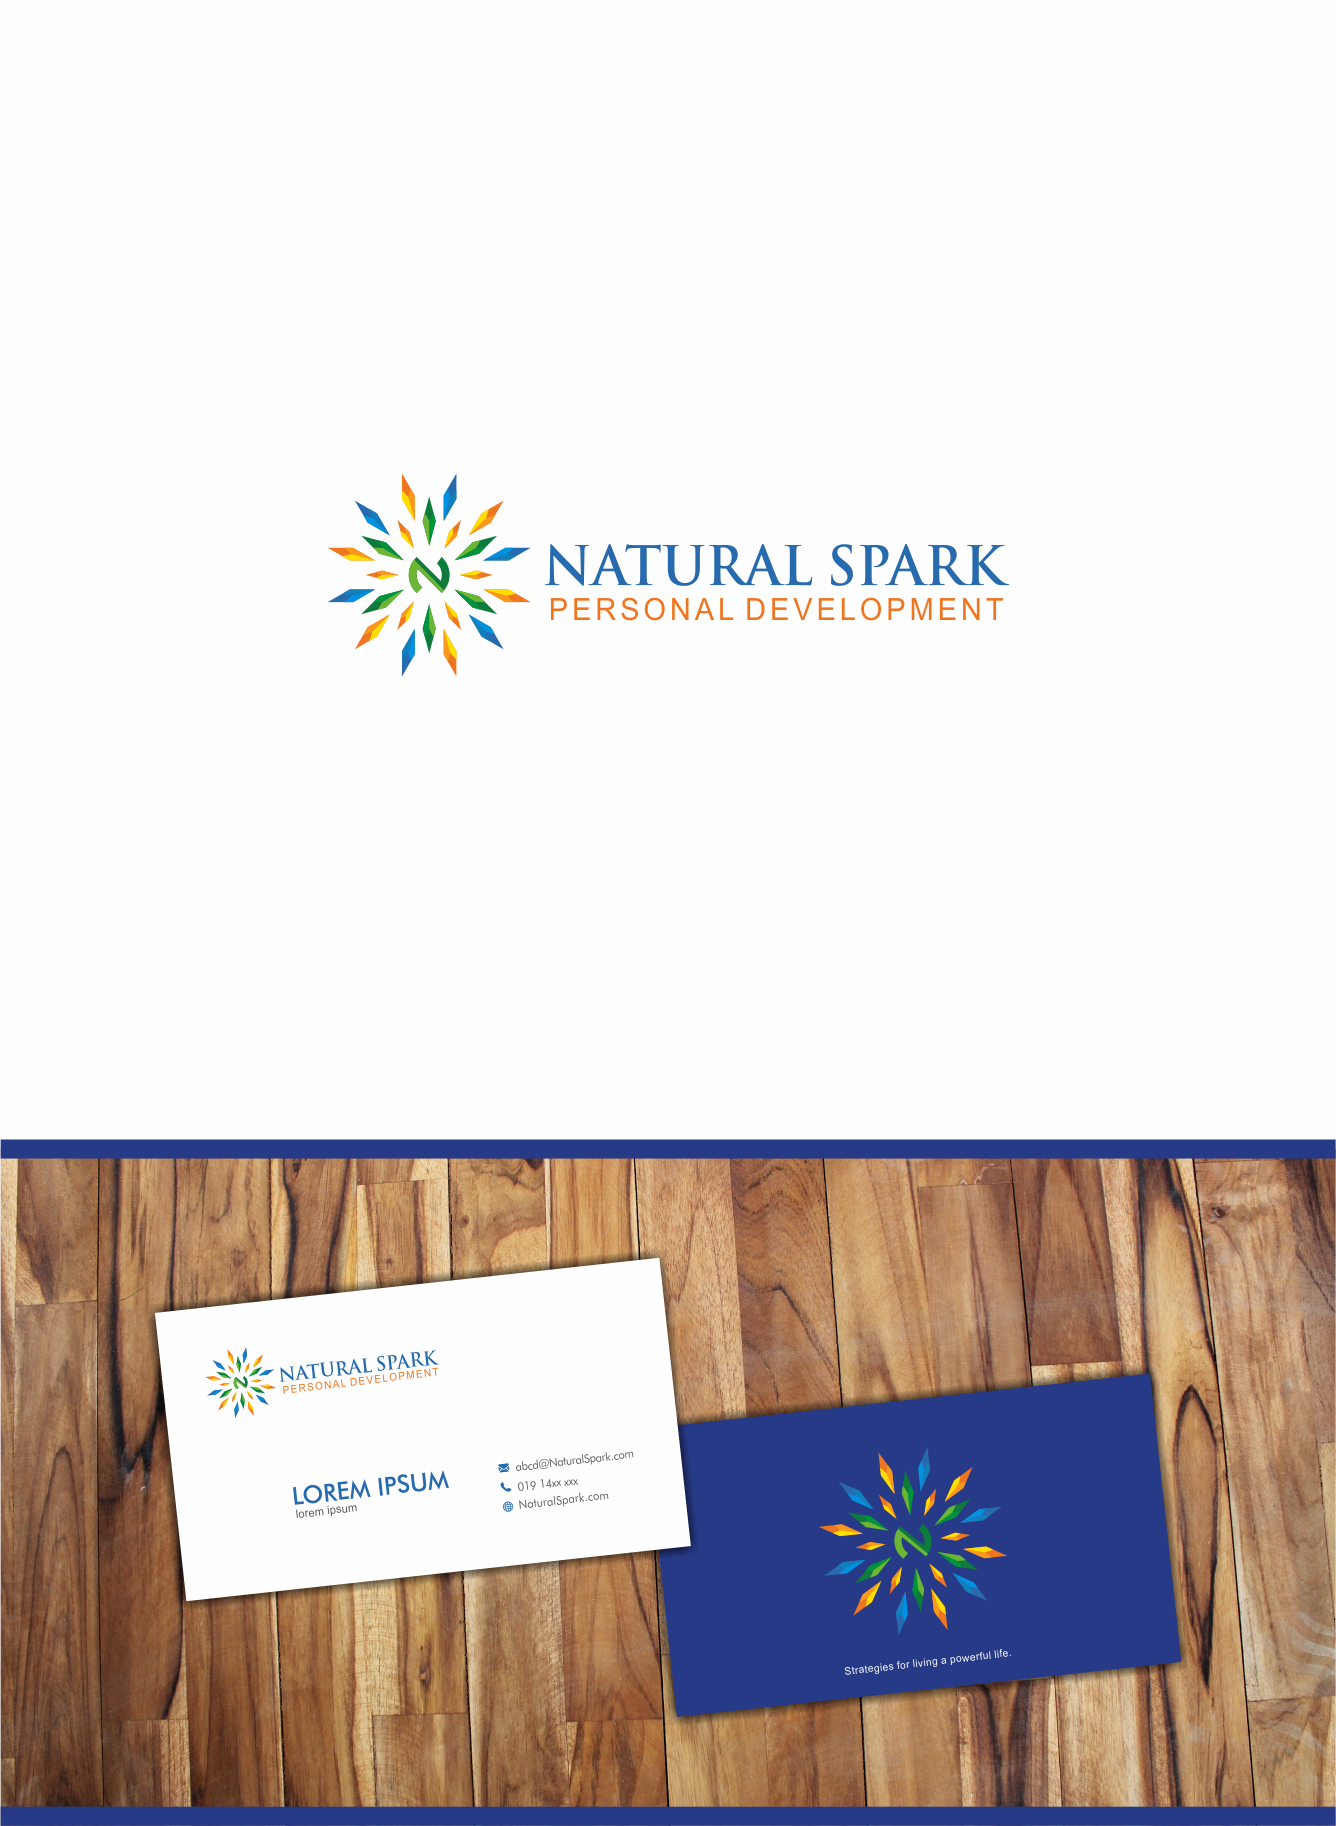 Create an inspiring logo and business card for new Personal Development start-up.